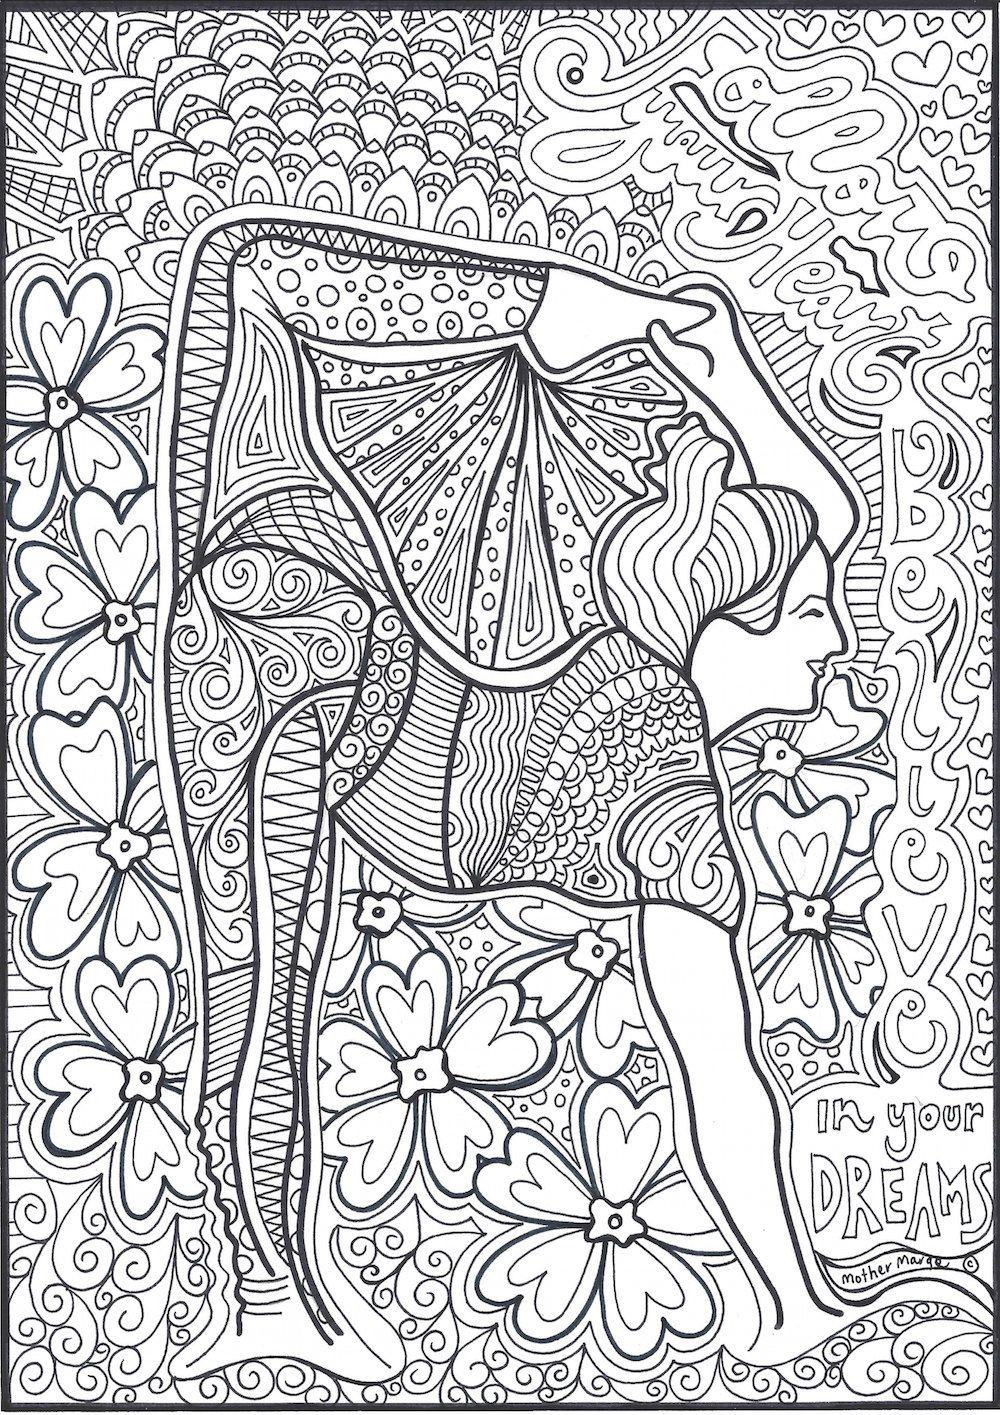 - Yoga Coloring Pages – Coloring.rocks!